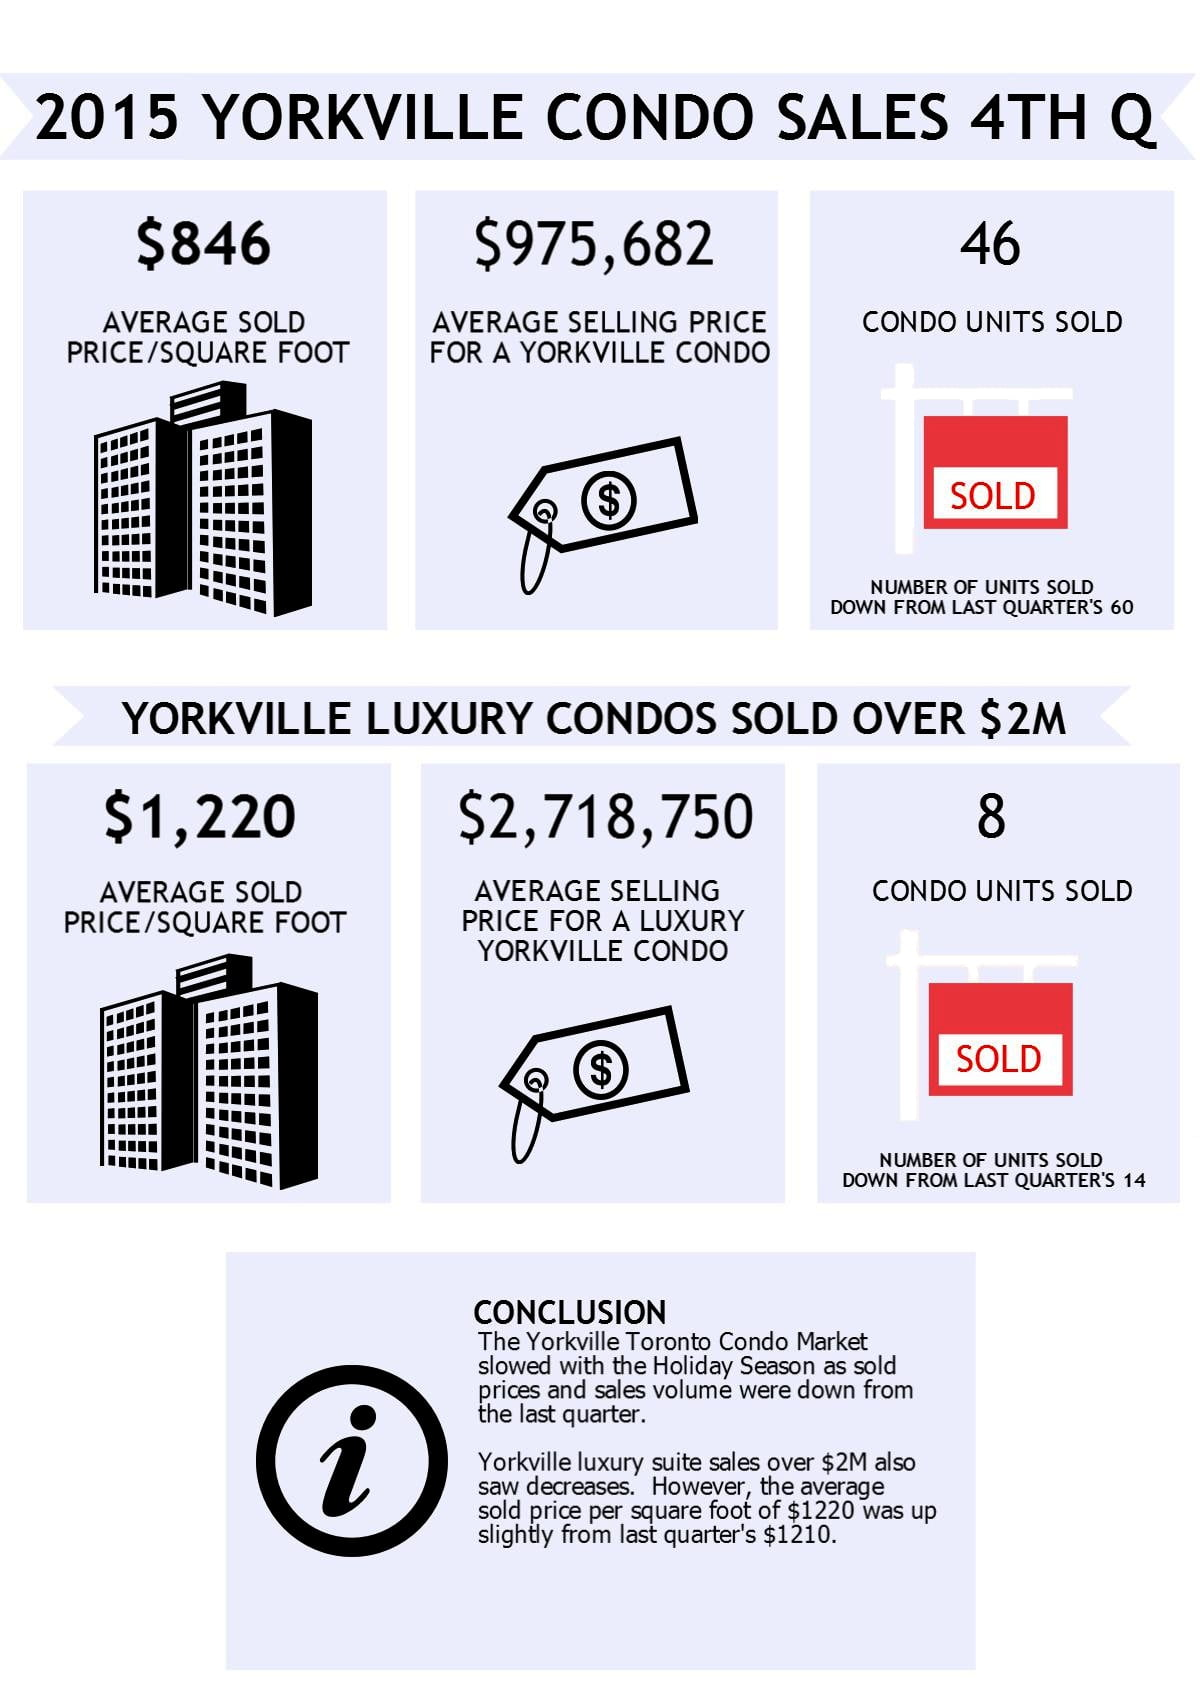 The Yorkville Toronto Condo Market slows down with the Holiday Season